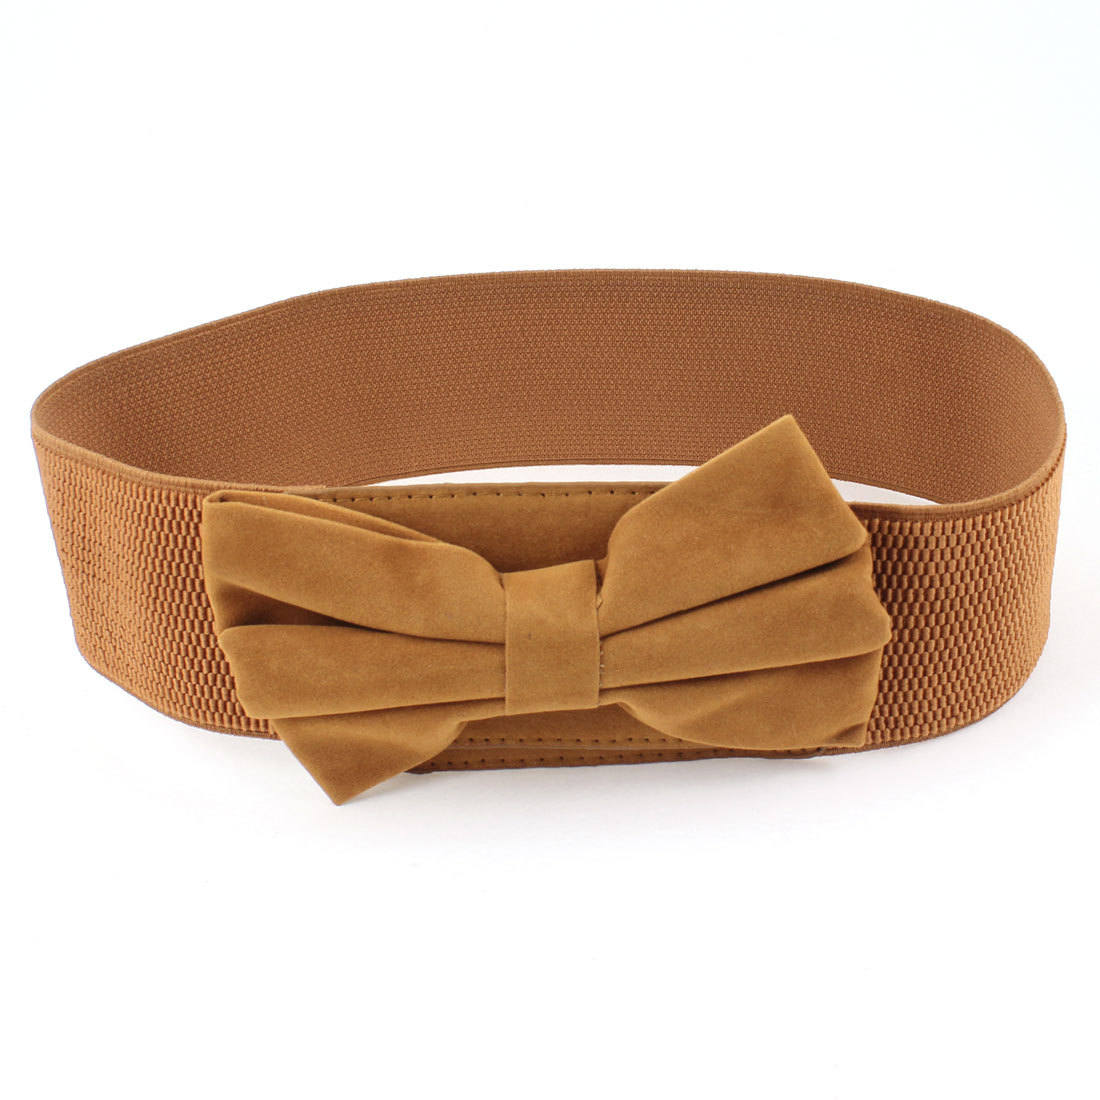 Woman Bowknot Interlocking Buckle 6cm Wide Brown Spandex Waistband Cinch Belt